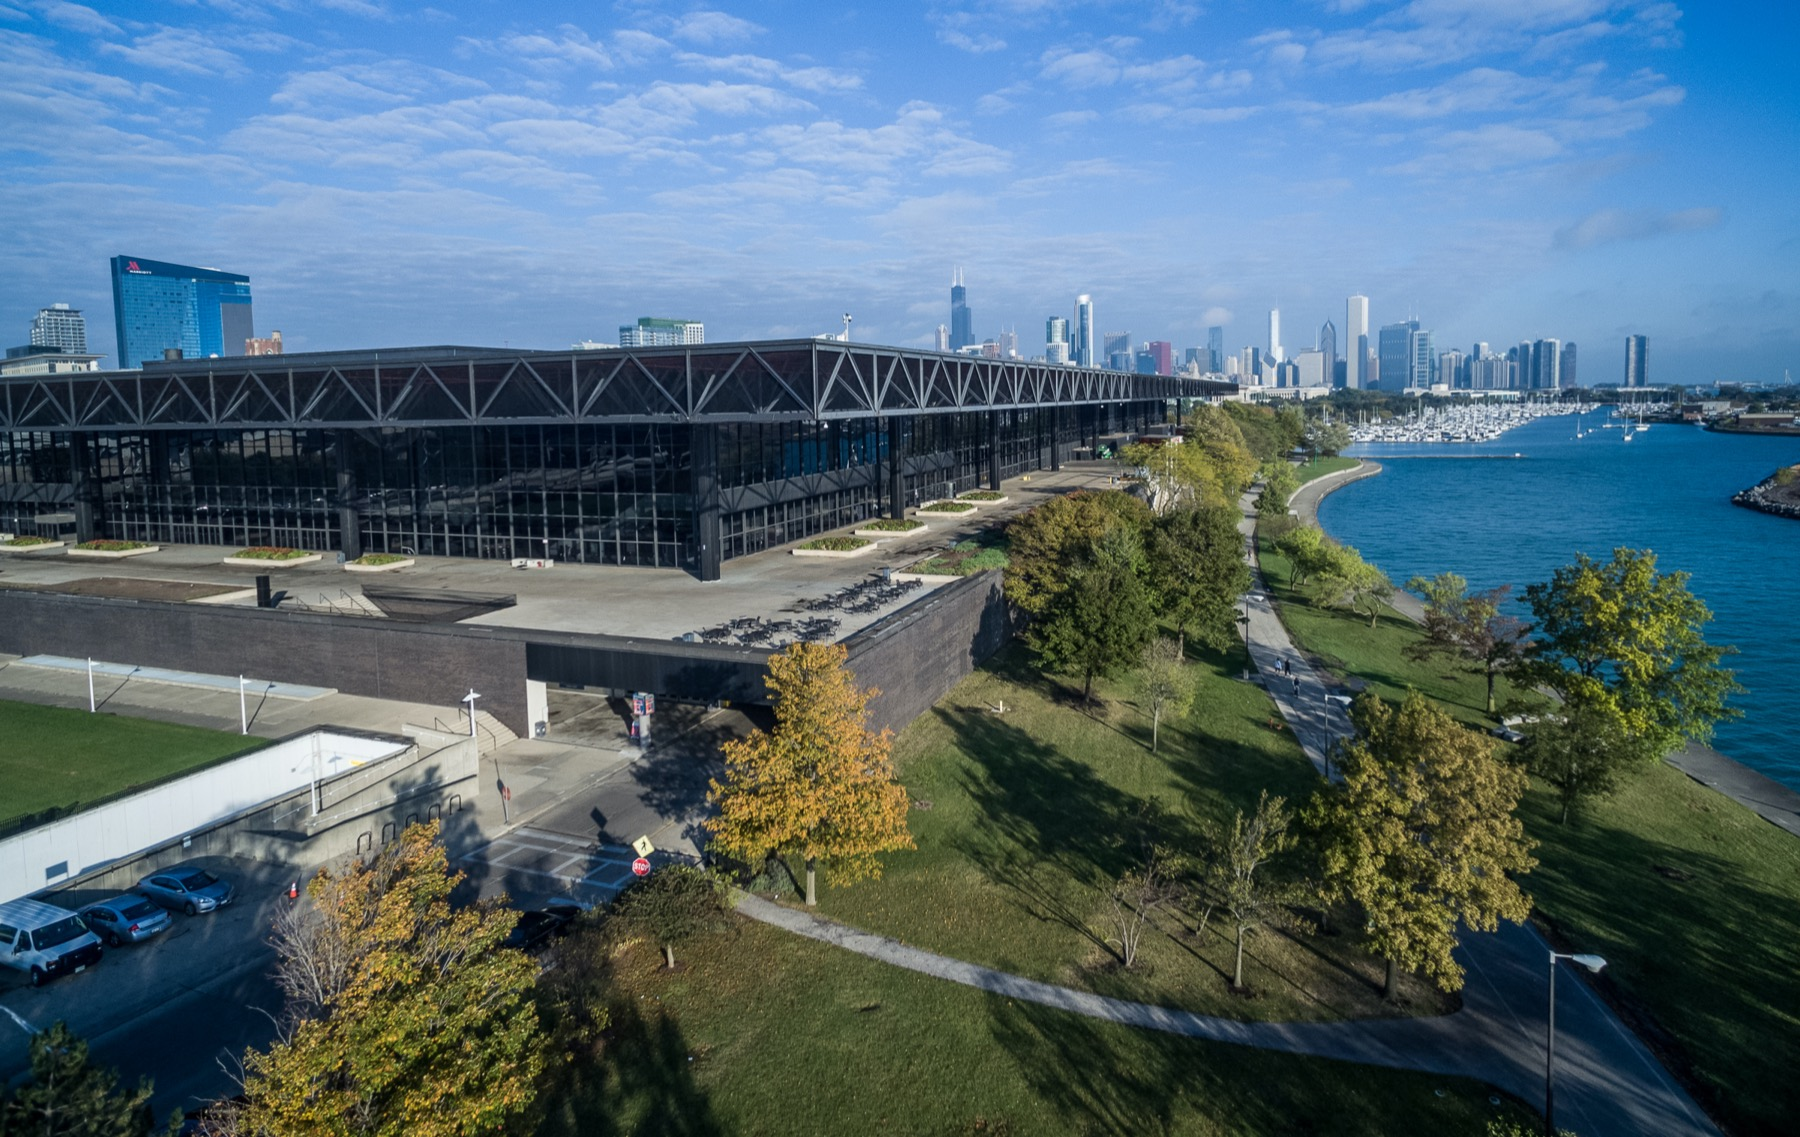 McCormick Place Lakeside Center